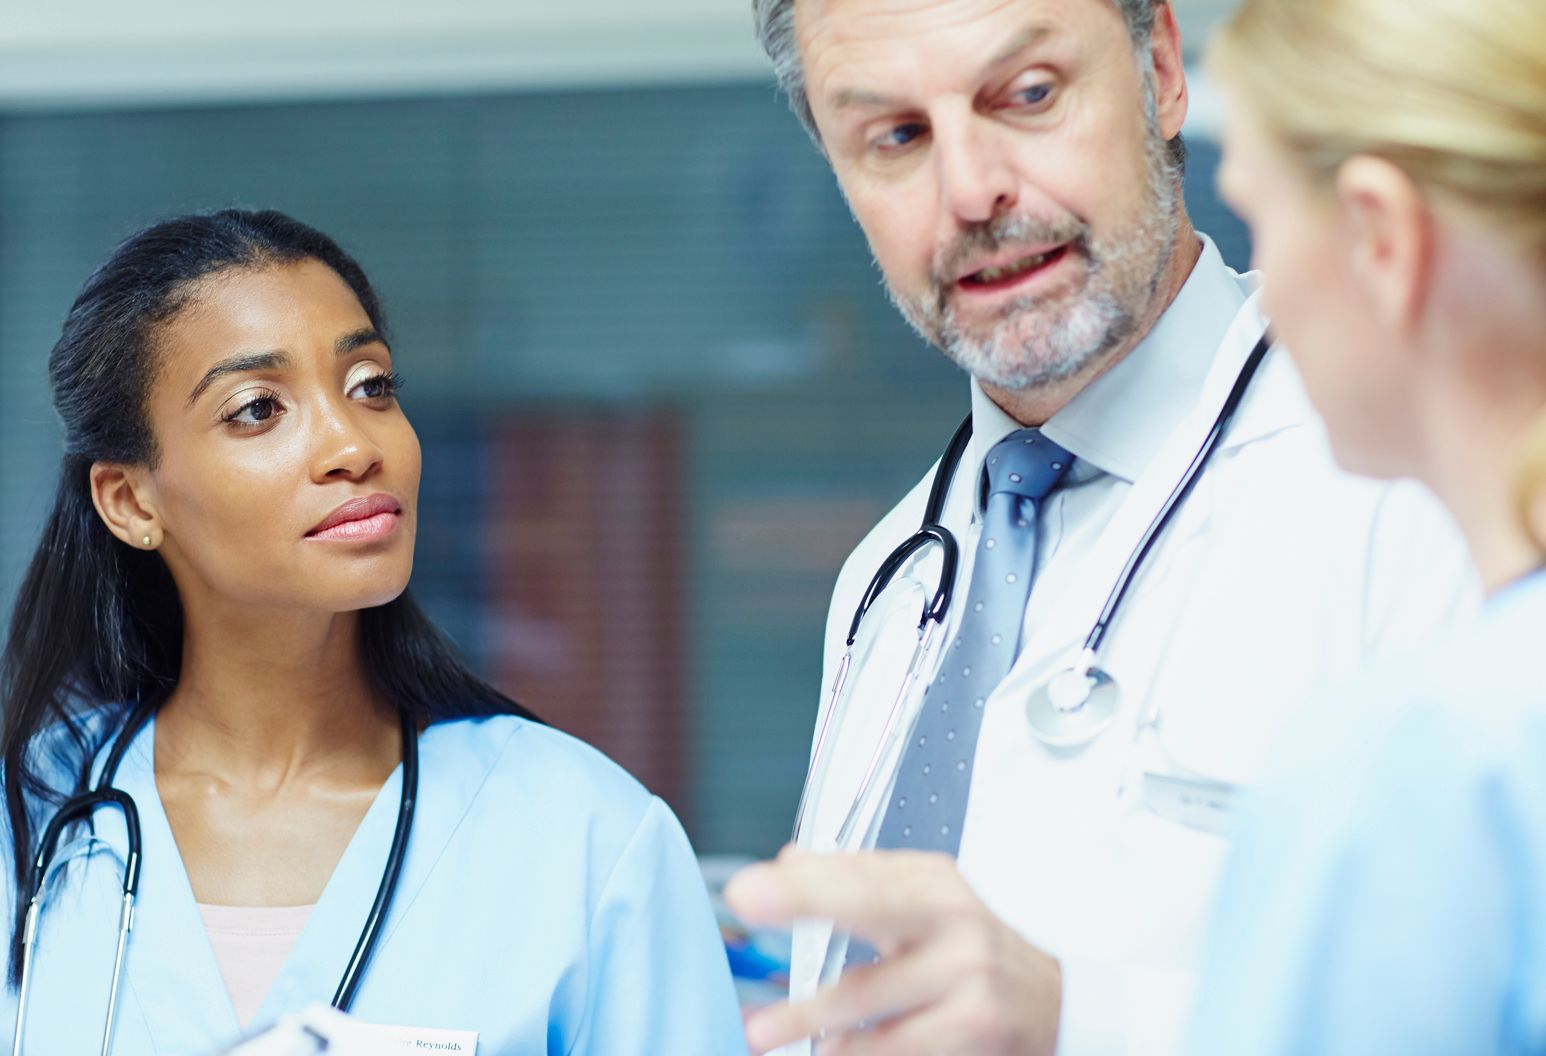 Female doctor in blue scrubs talks to doctor in white lab coat